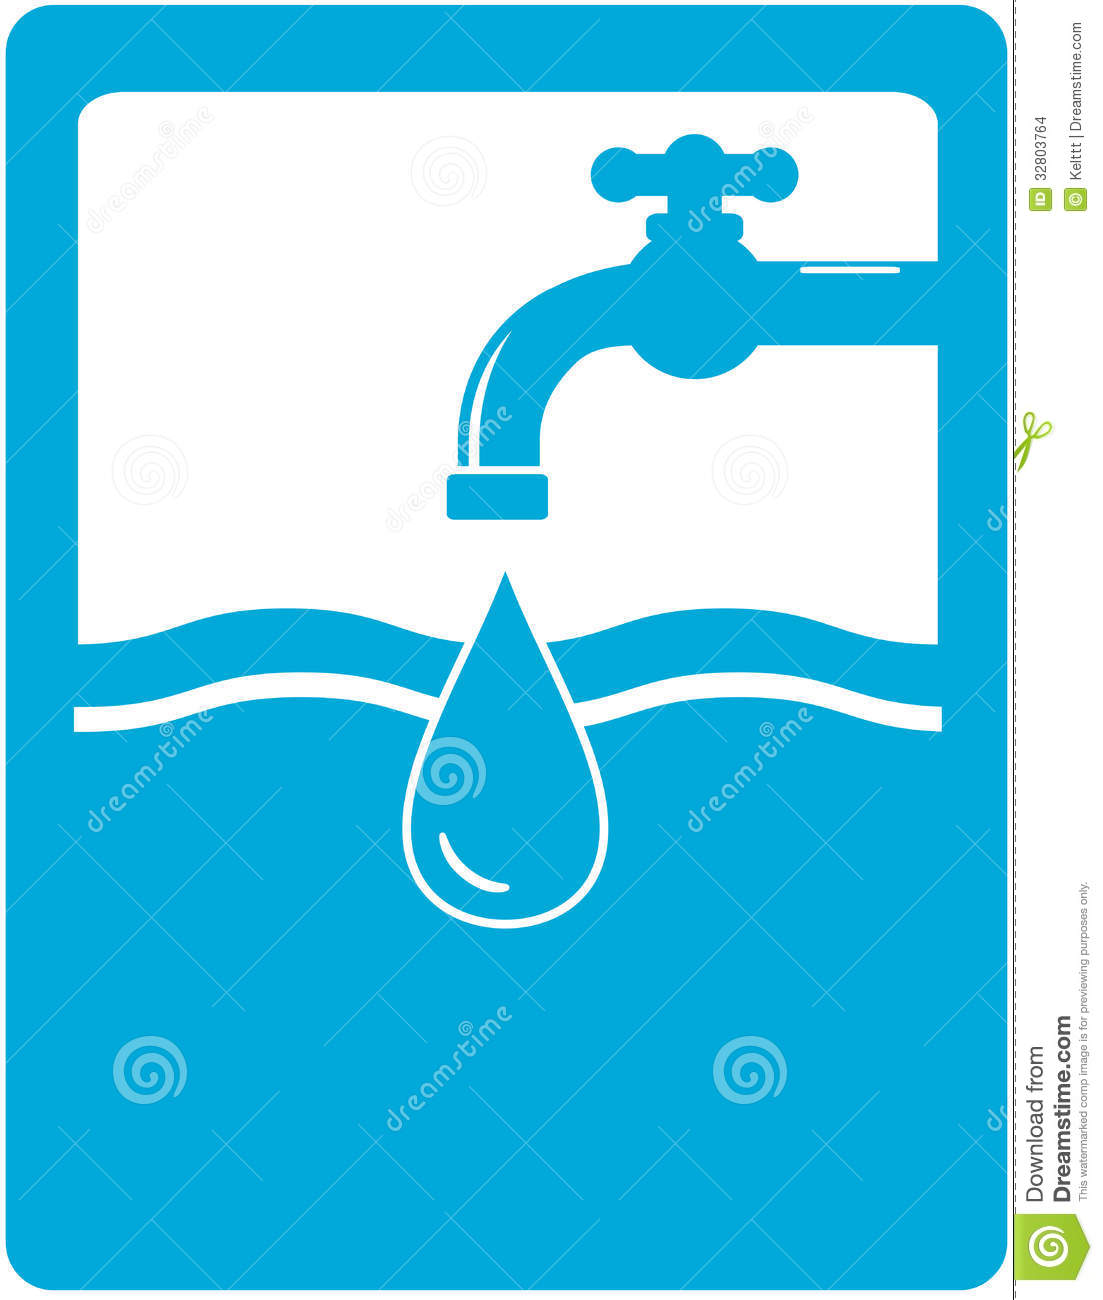 Drinking Water Faucet >> Drinking Water Symbol With Faucet, Tap And Water D Stock ...